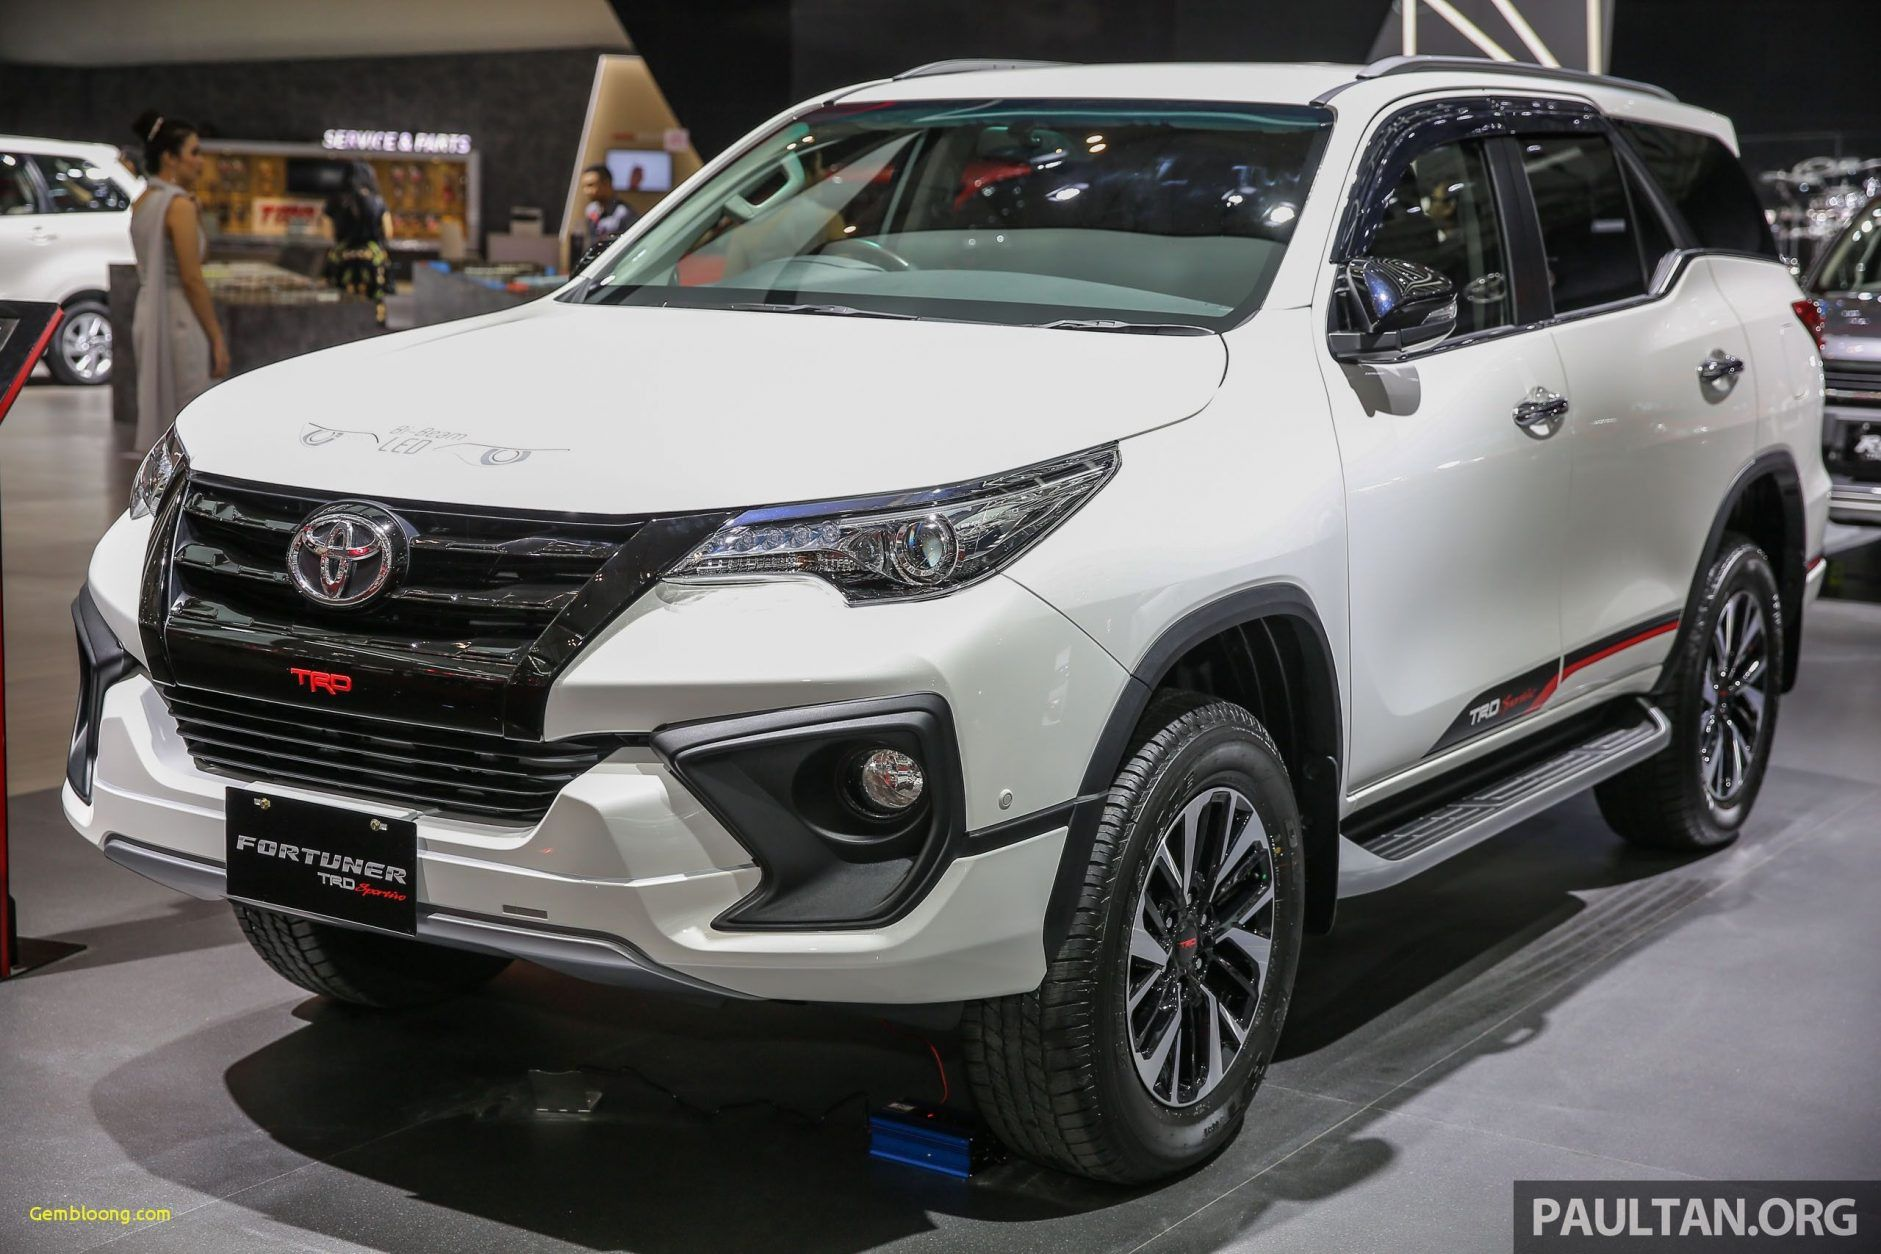 New 2020 Toyota Fortuner Look Hd Wallpaper Toyota Fortuner 2017 Toyota Car Volkswagen New Cars